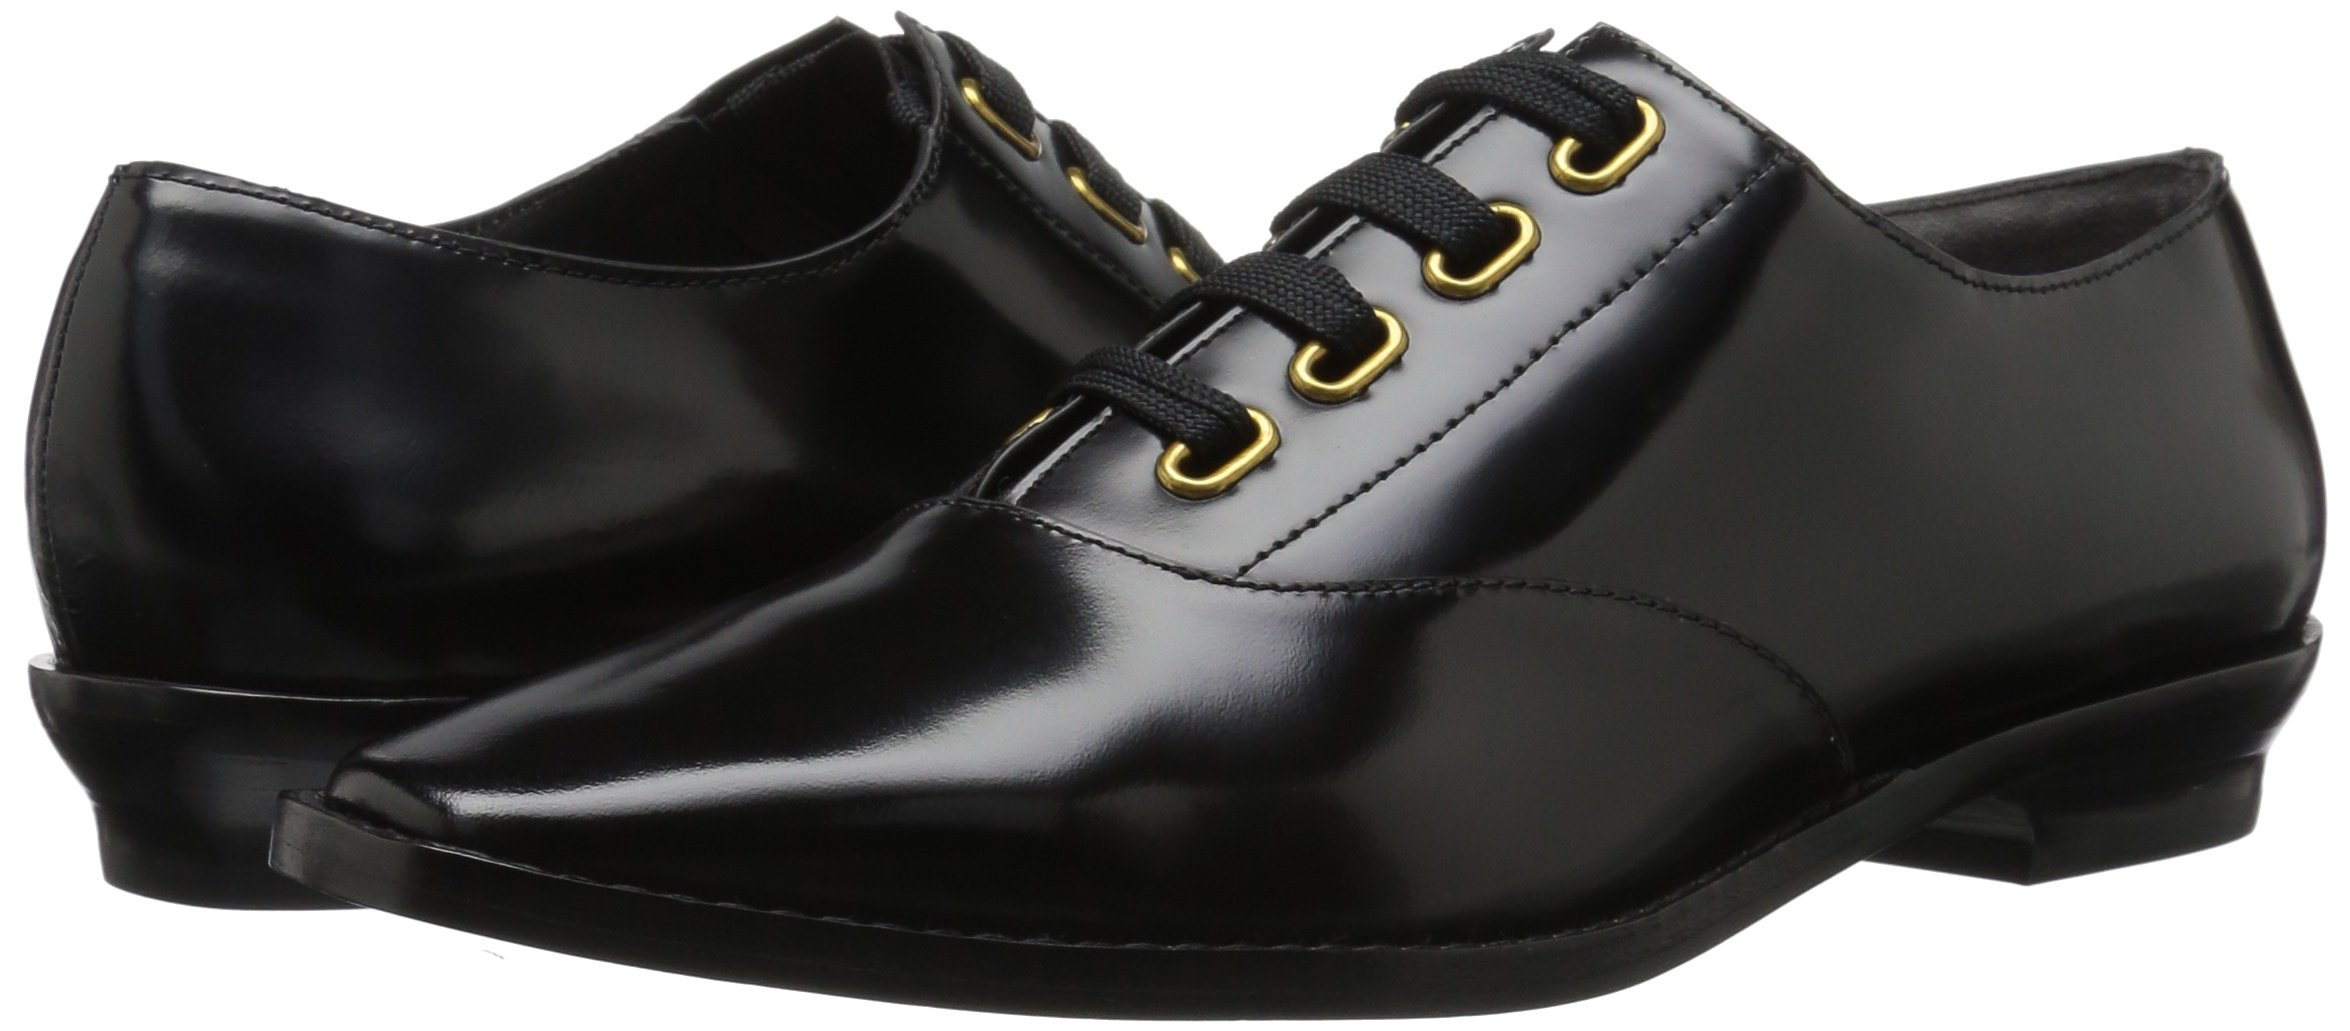 Marc Jacobs Women's Brittany Lace up Oxford, Black, 36 M EU (6 US) by Marc Jacobs (Image #6)